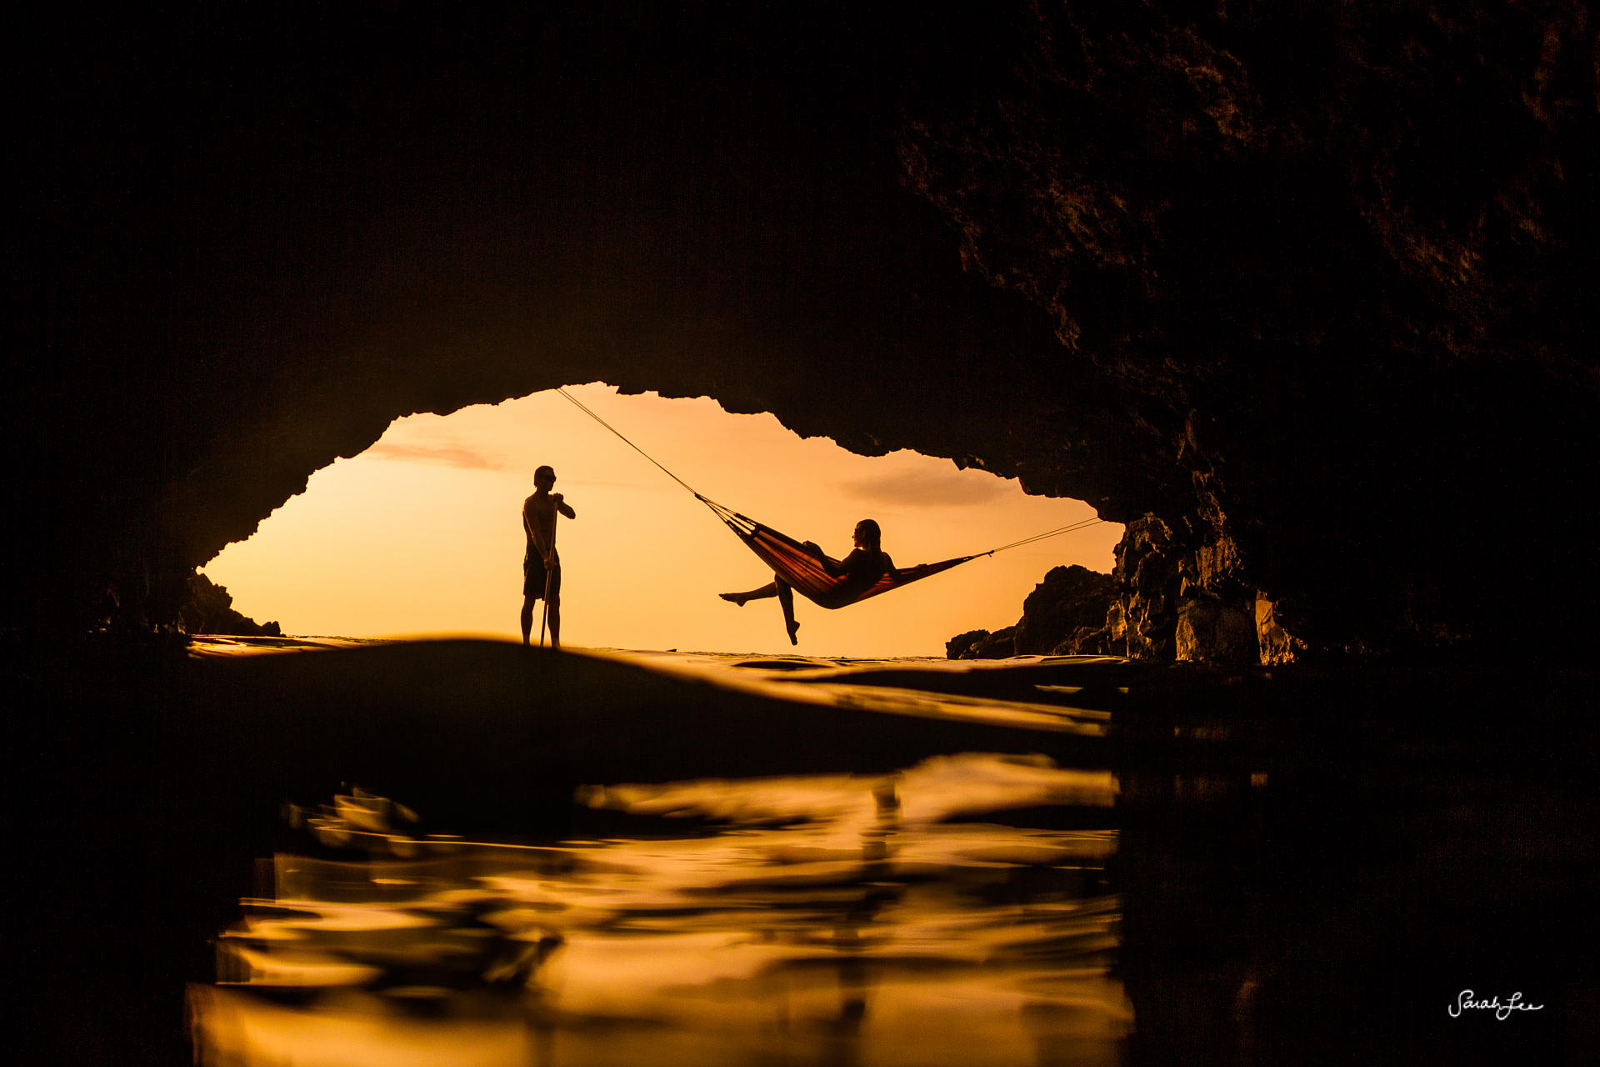 5 Most Epic Beaches, Oceans, and Islands to Photograph Now